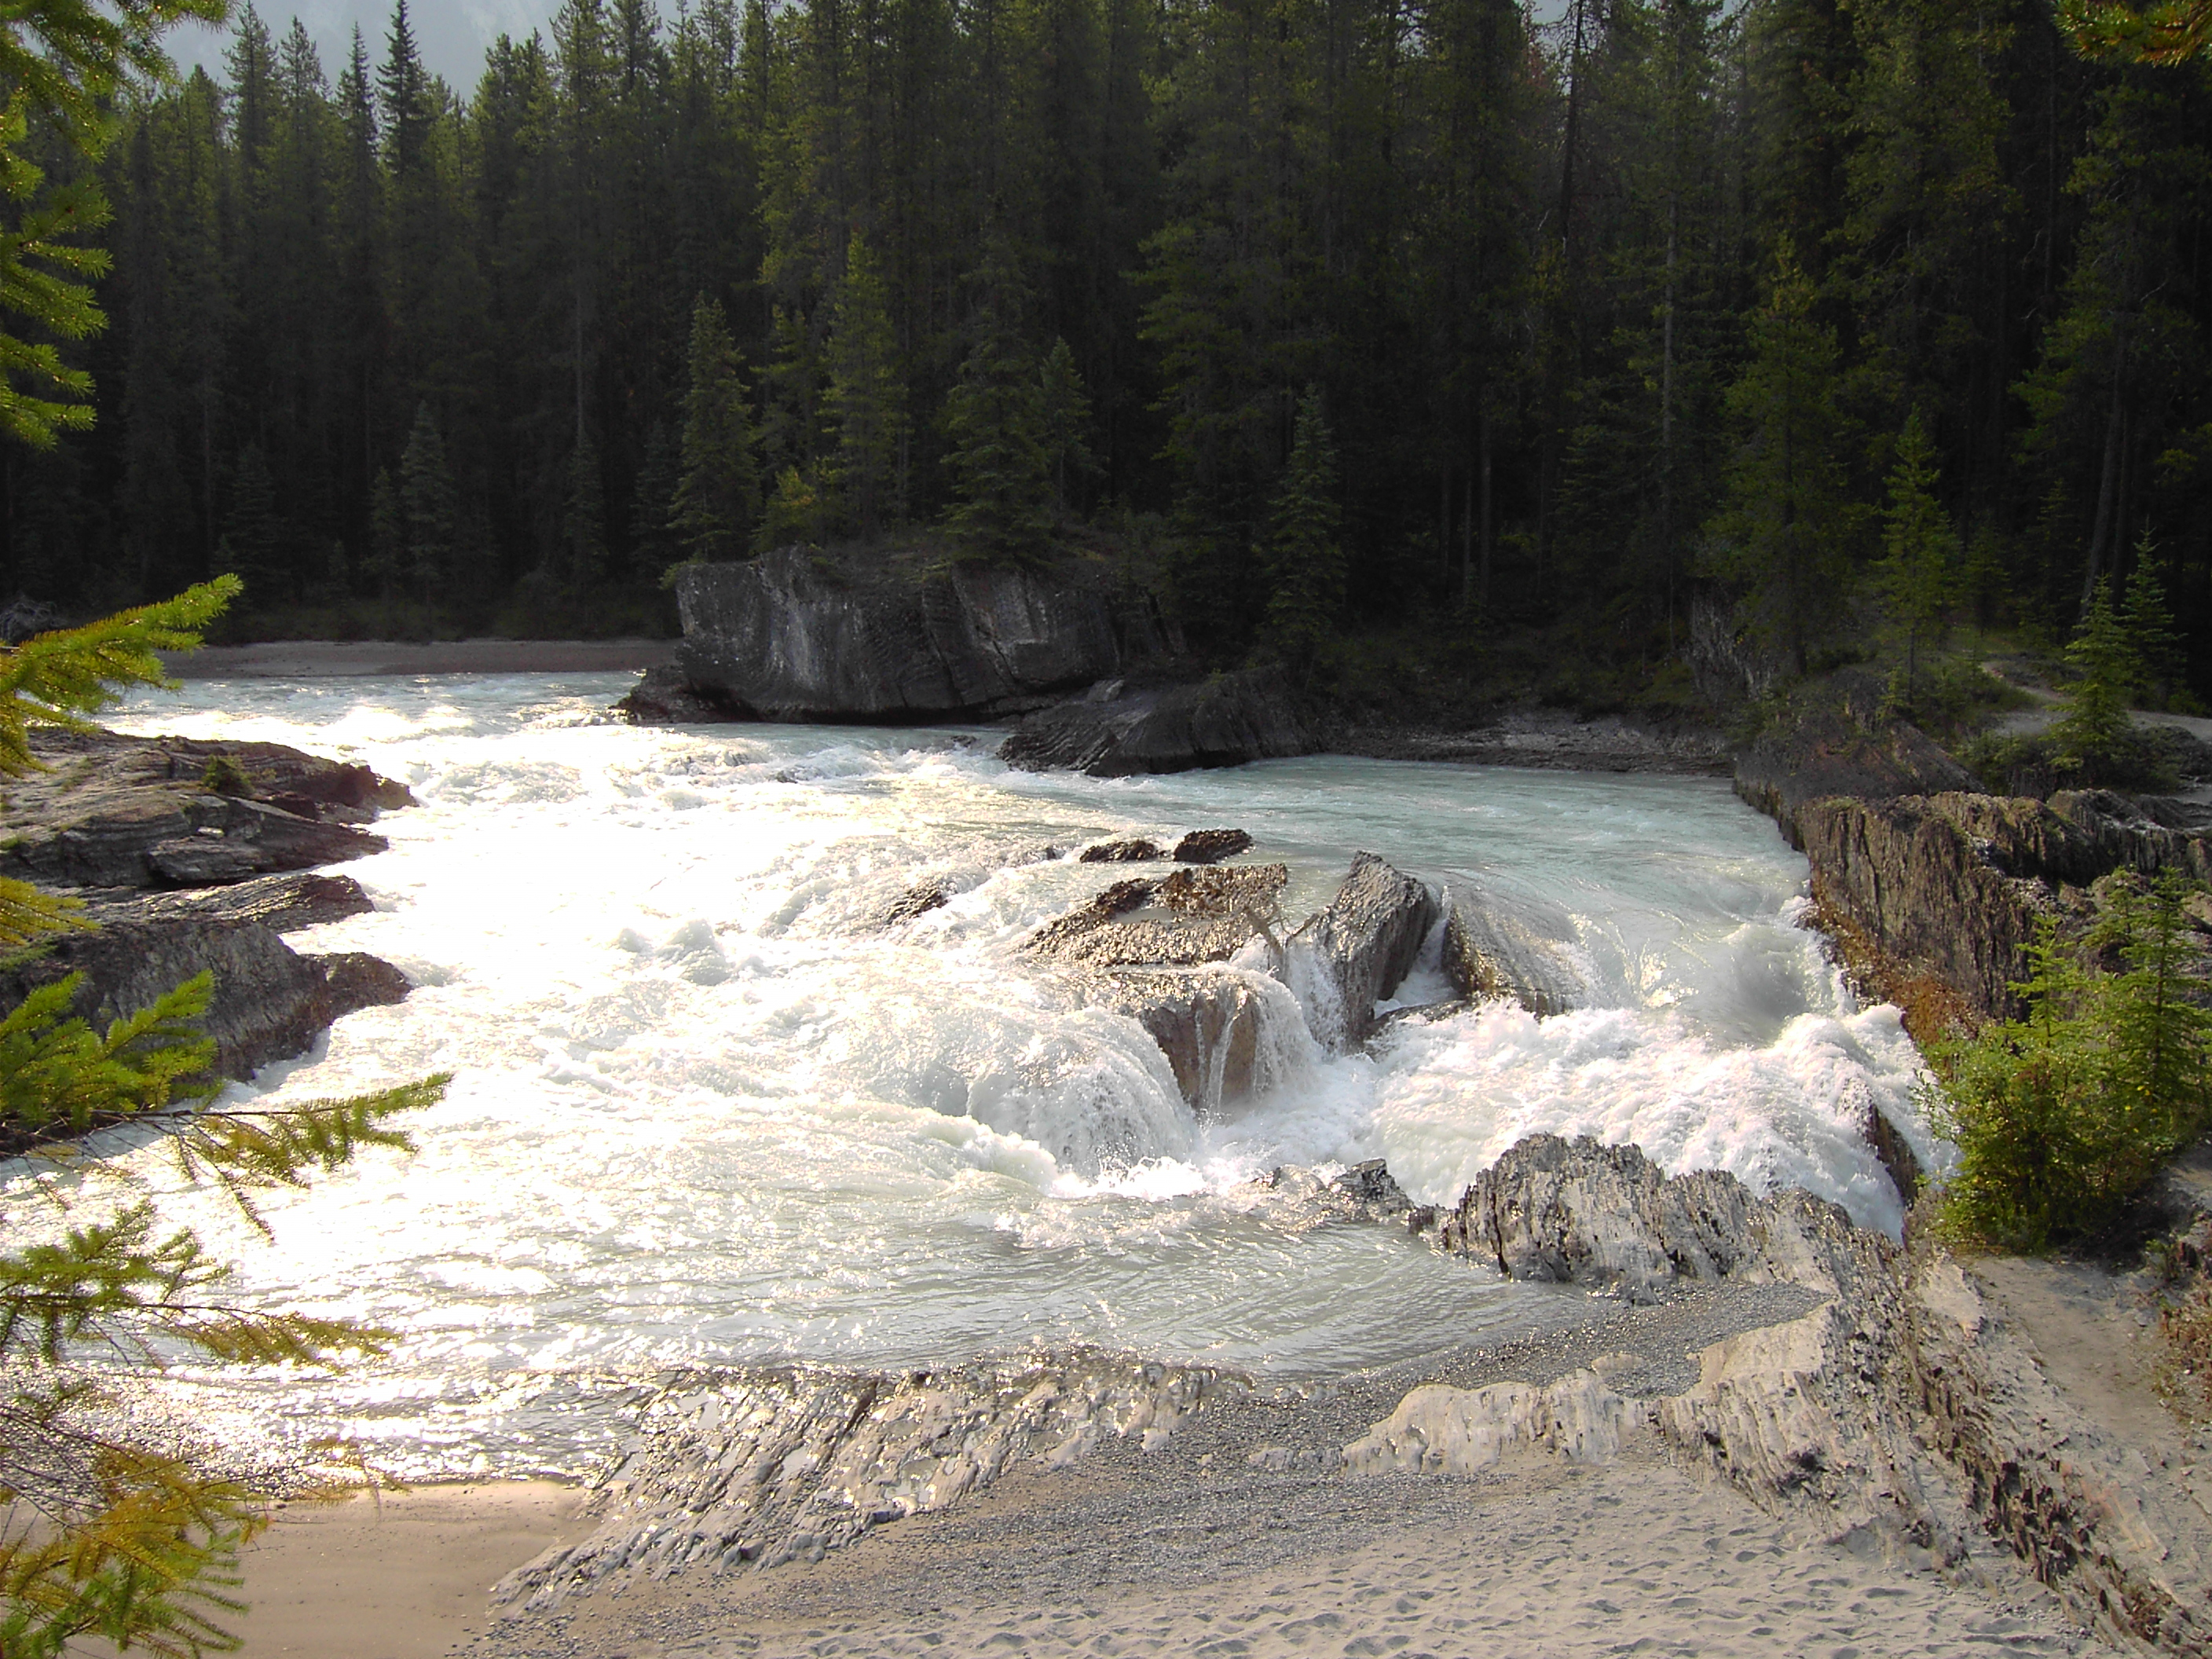 alberta whitewater rafting canadian rockies vacations guide banff national park